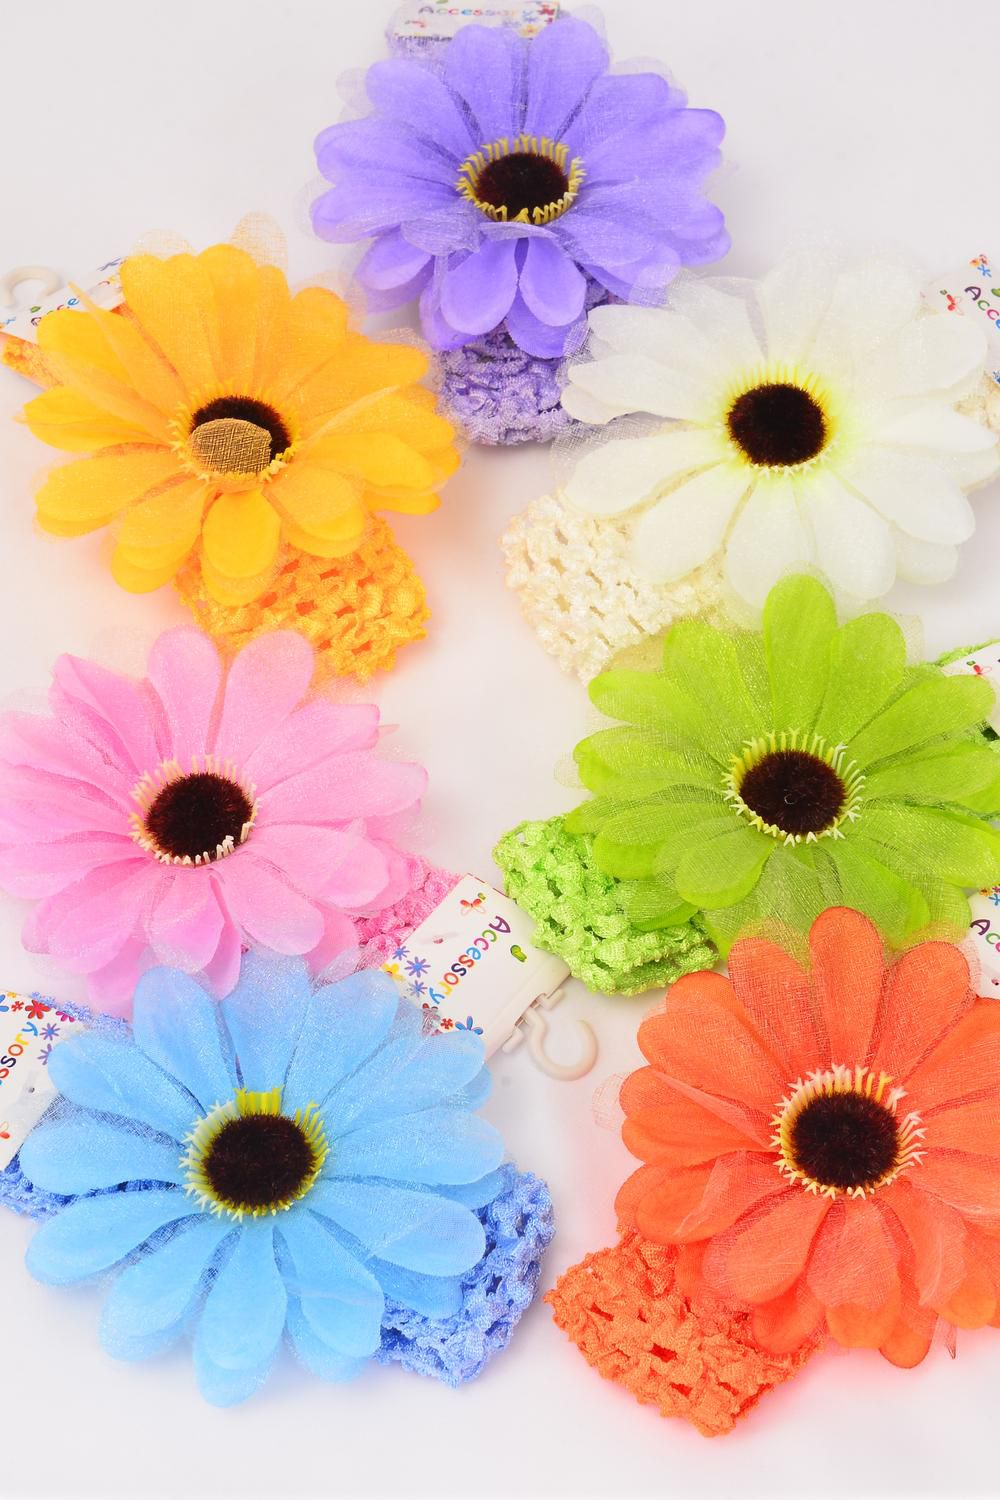 "Ballerina Headband Chiffon flower Stretch/DZ **Stretch** Ballerina-1.5"" Wide Flower-4"" Wide,2 Pink,2 Yellow,2 Beige,2 Blue,2 Orange,1 Lavender,1 Lime,7 Color Asst,Hang tag & UPC Code,Clear Box"